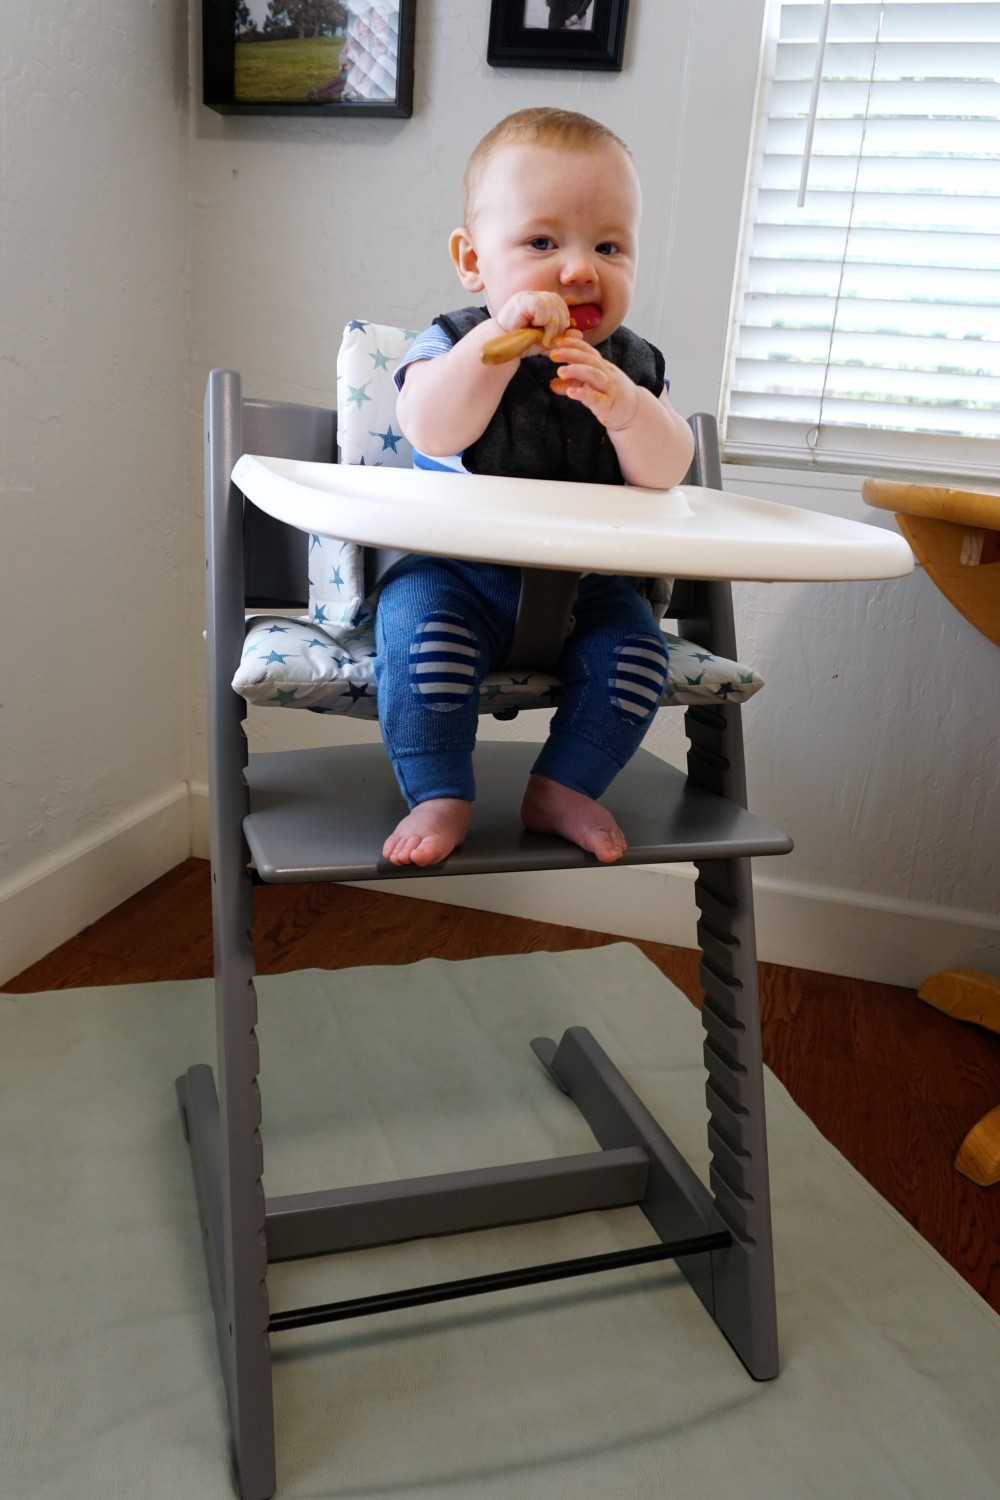 Mason's First Food Made Easier with Gathre Floor Mat-Avanchy Bamboo Spoon-Stokke High Chair-Gathre Mat-Have Need Want 5